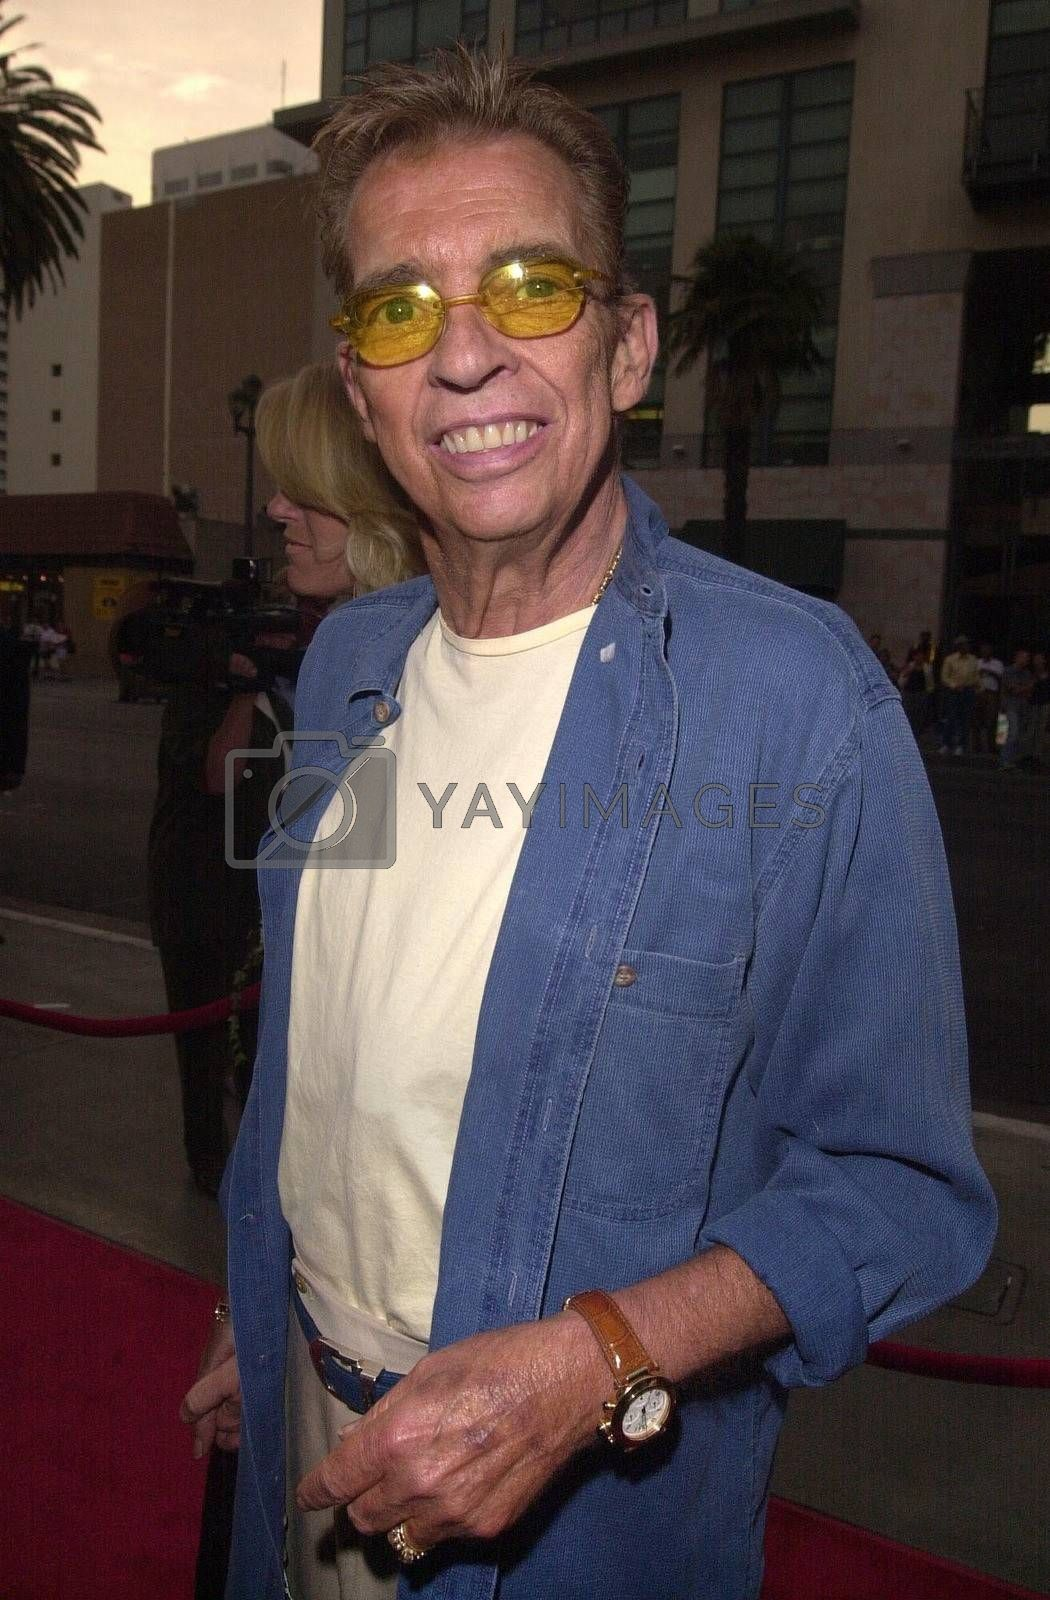 Morton Downey Jr. at the premiere of My 5 Wives in Santa Monica. 08-28-00